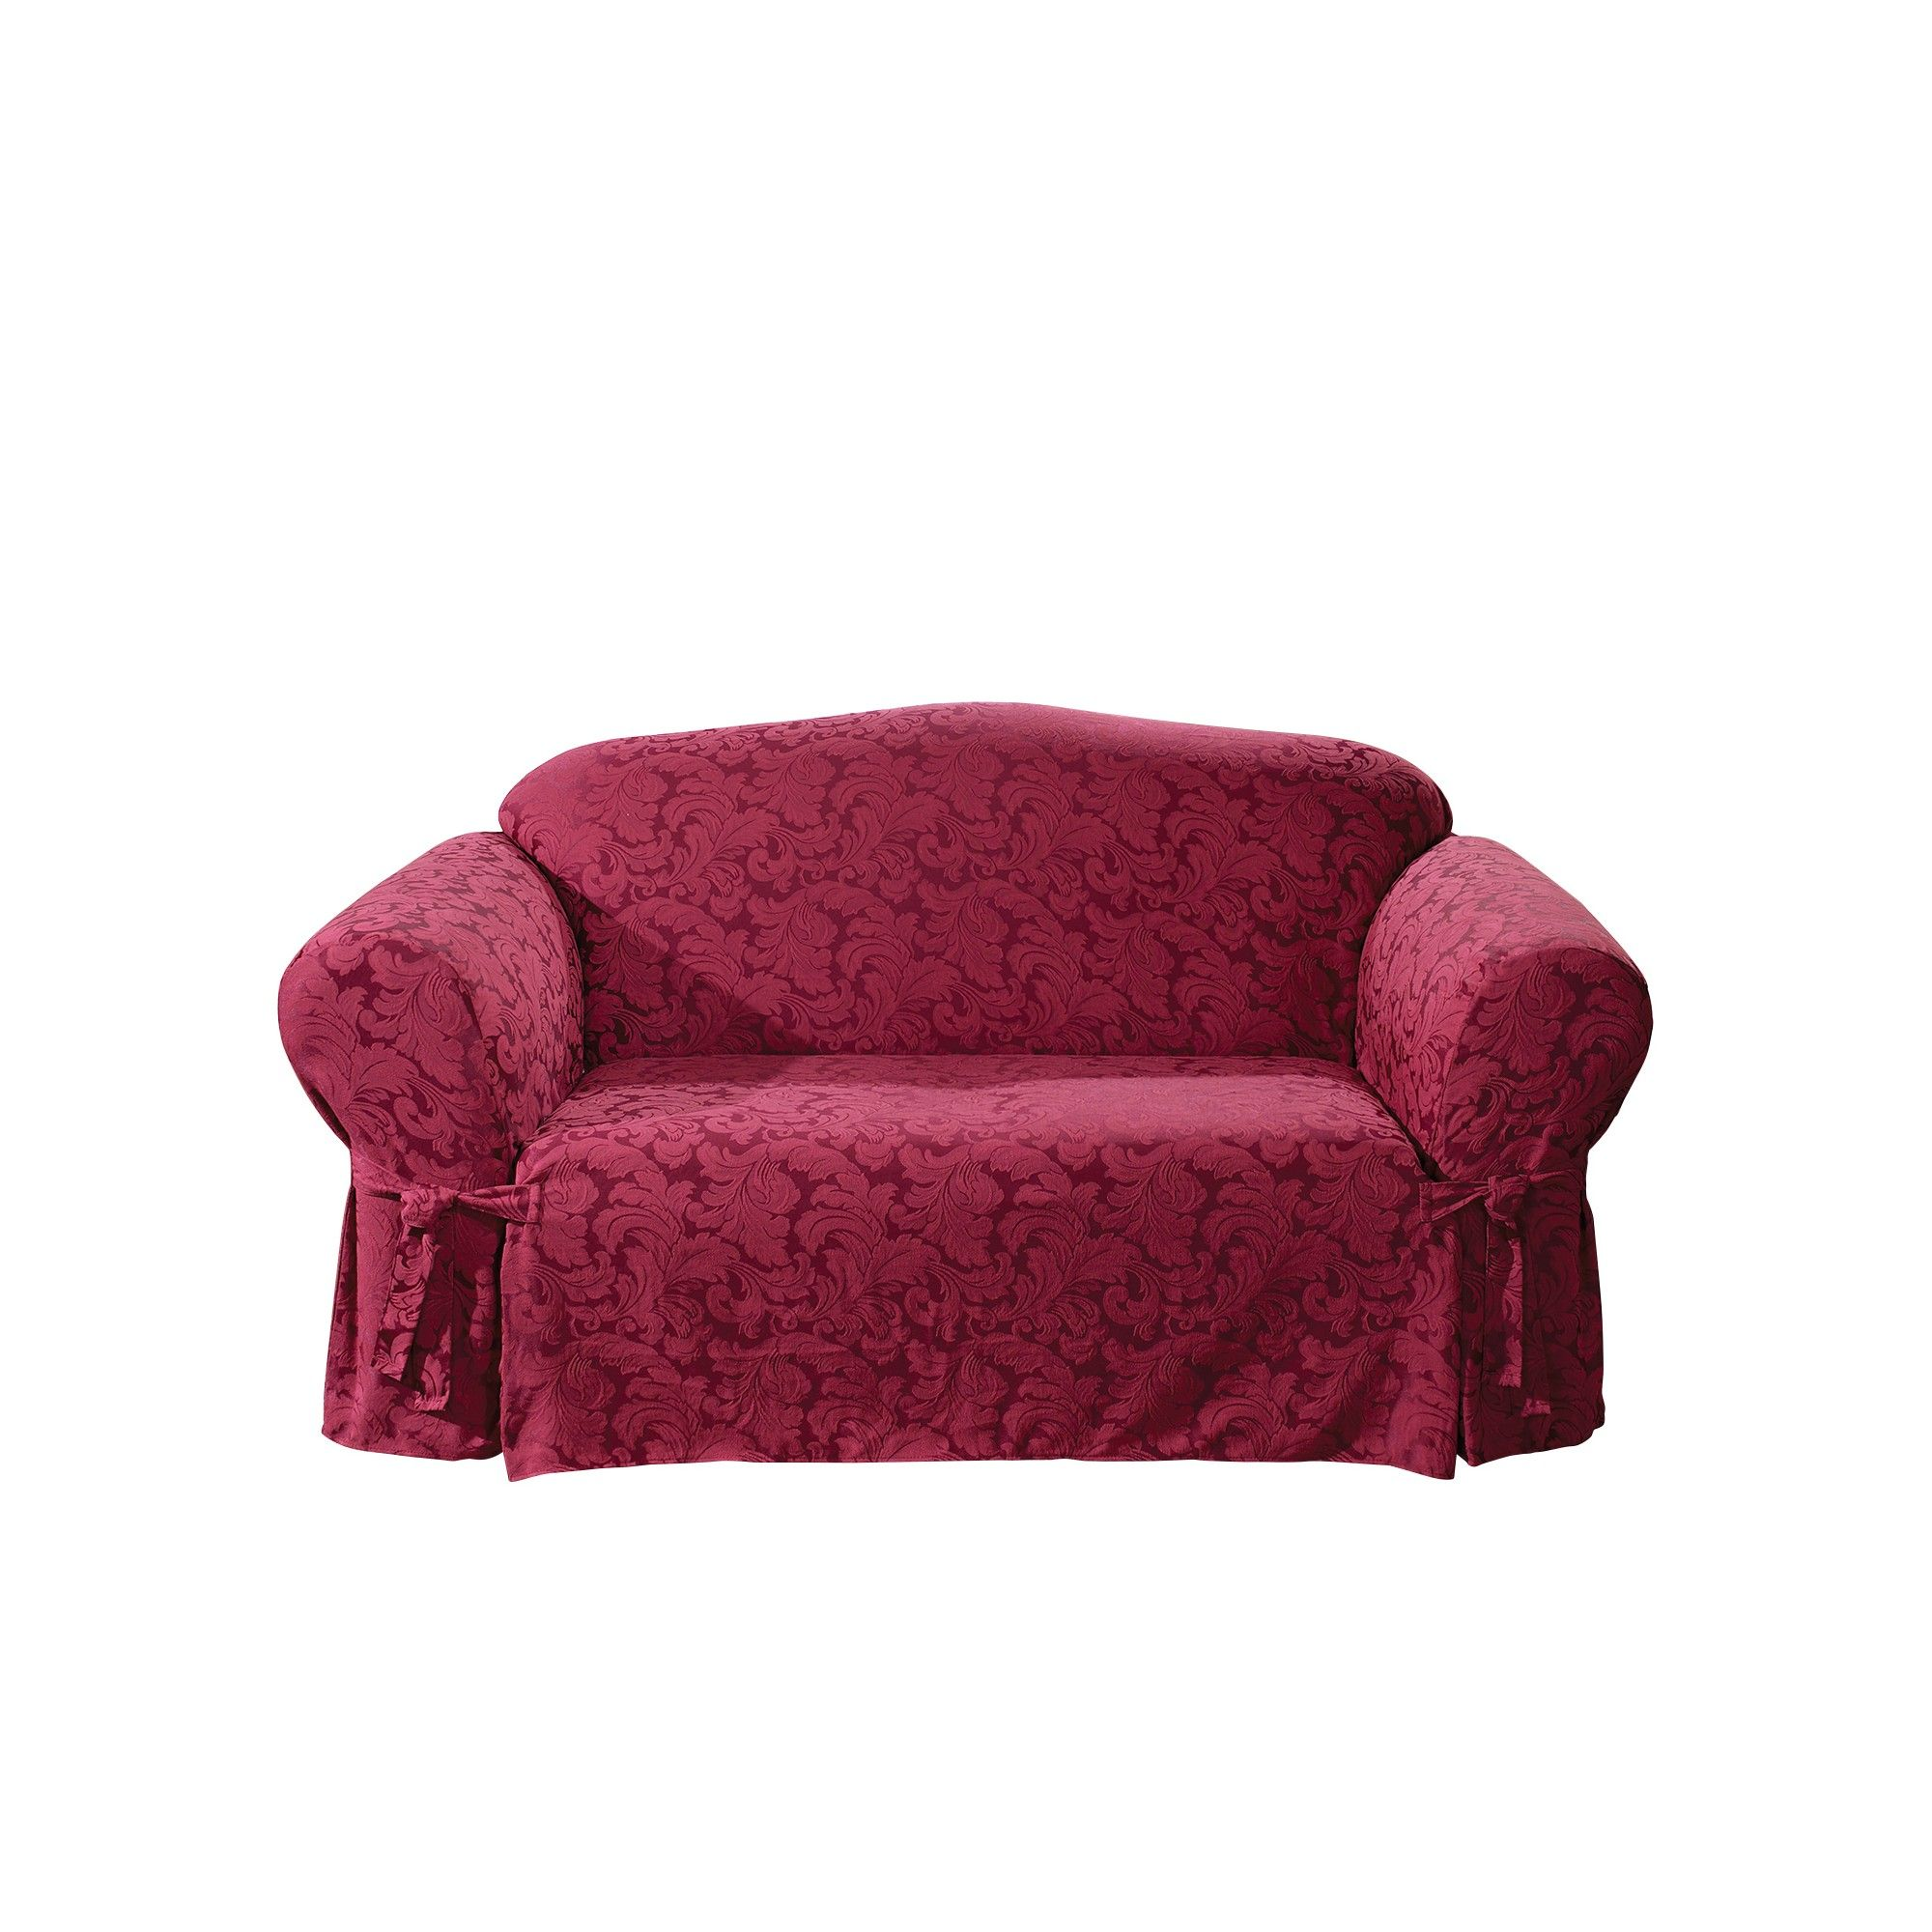 Scroll Loveseat Slipcover Burgundy (Red) - Sure Fit | Products ...